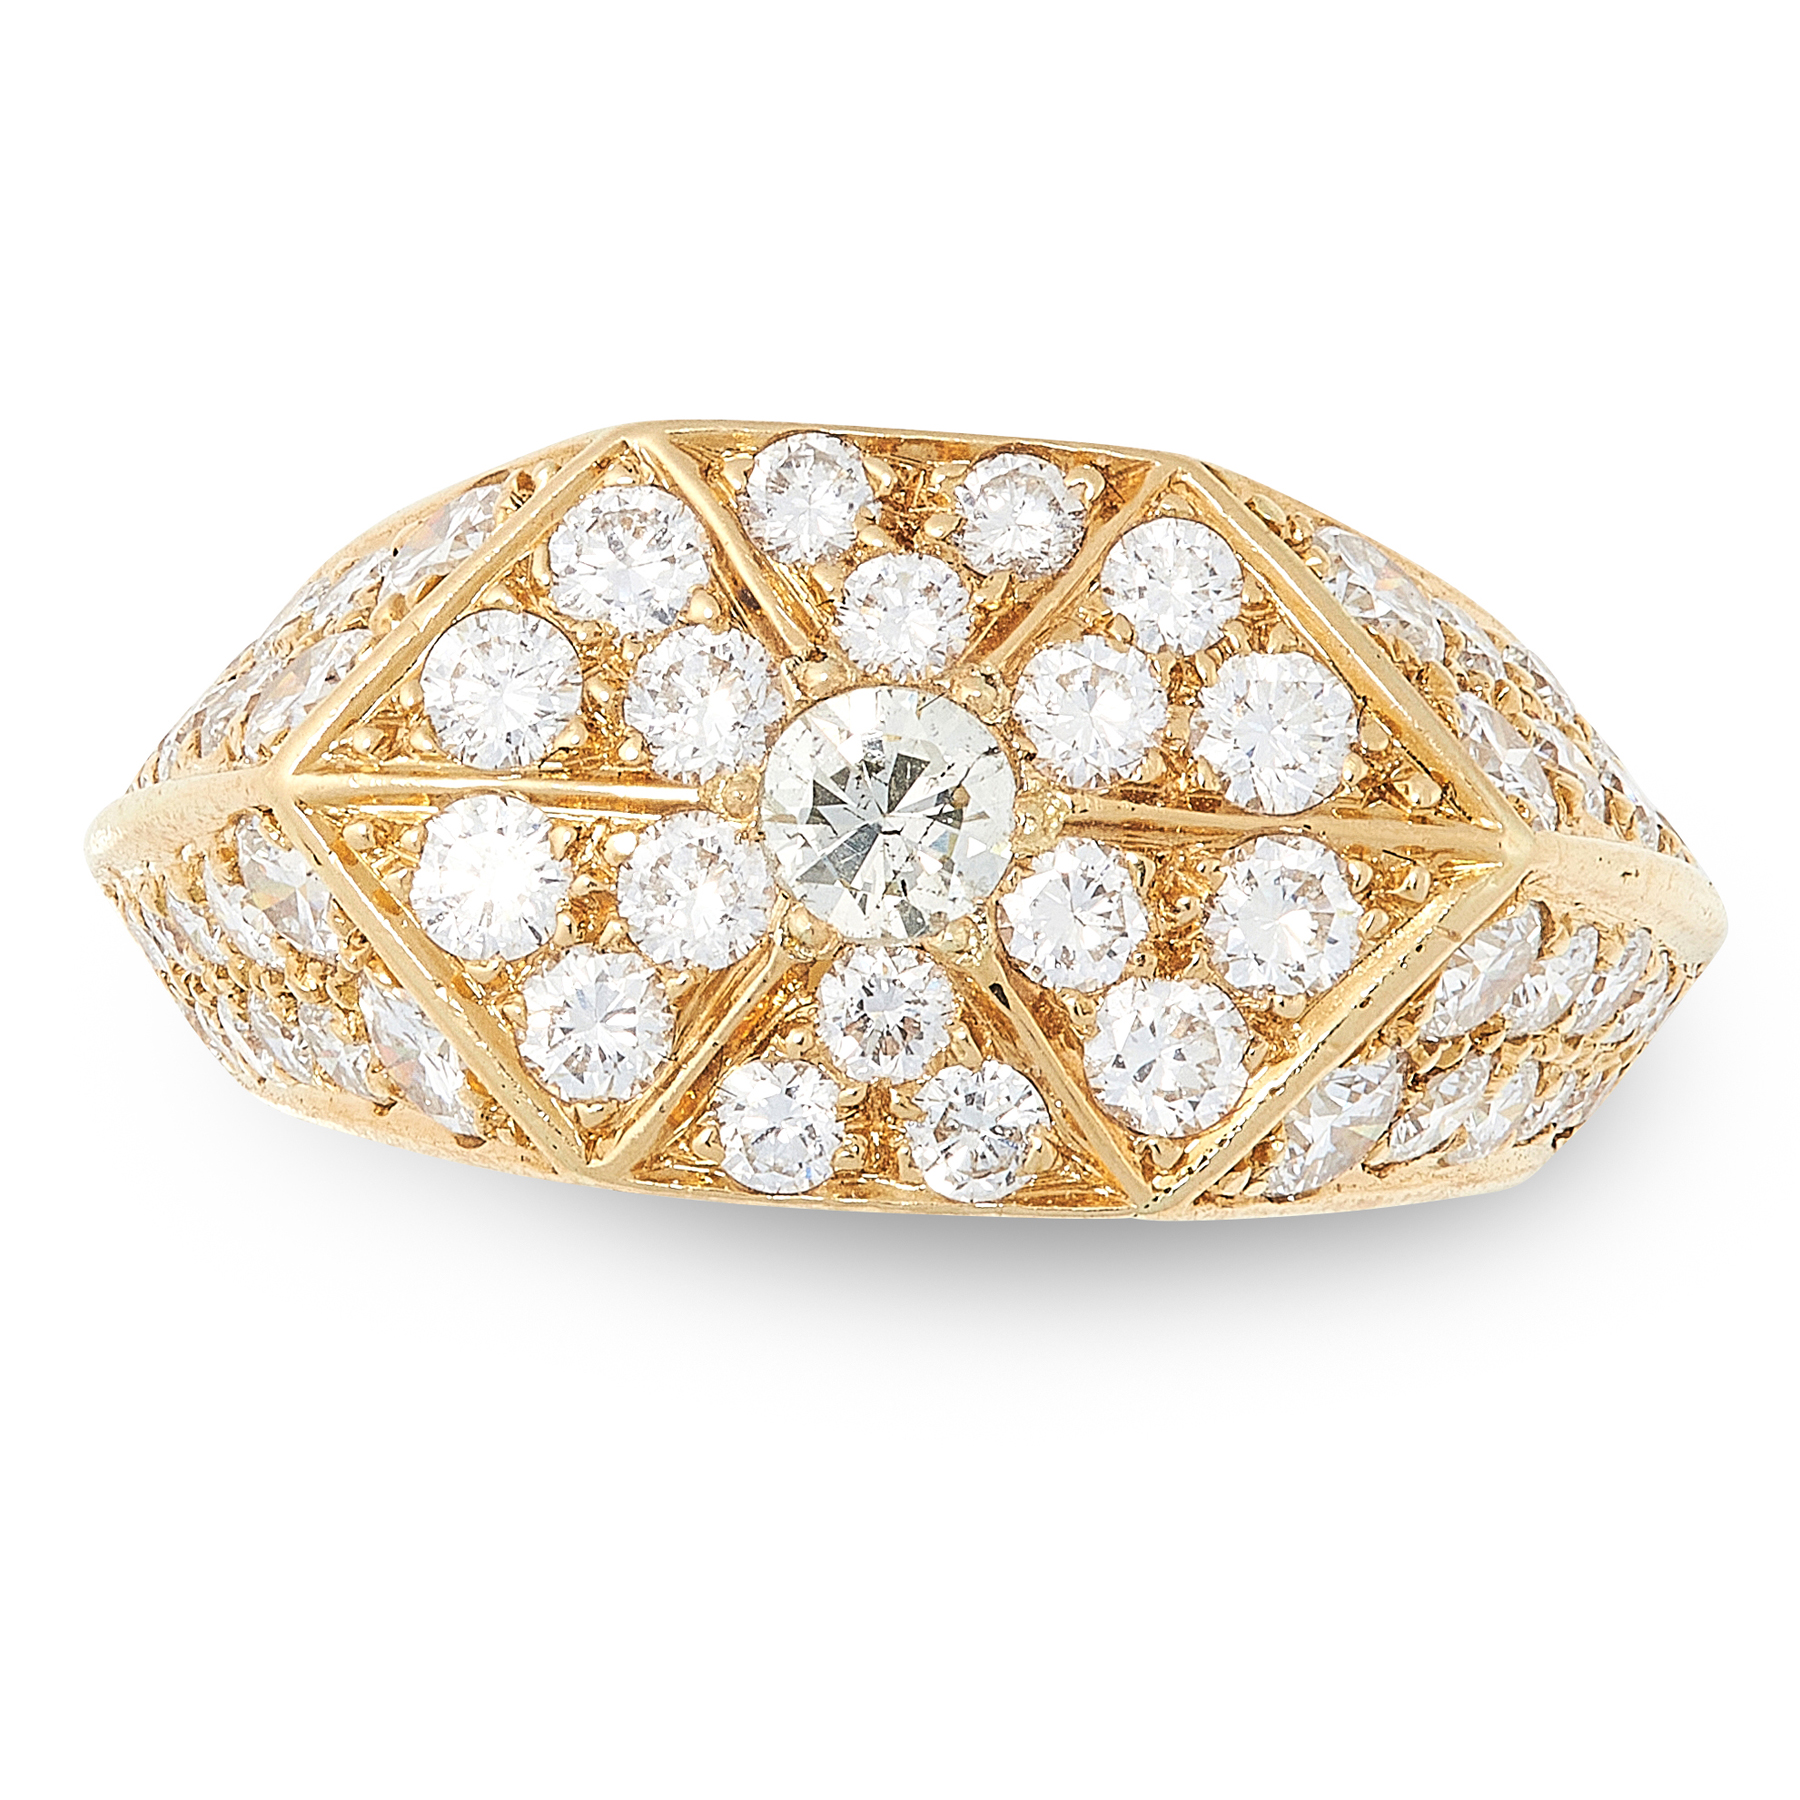 A DIAMOND DRESS RING in 18ct yellow gold, the hexagonal face set with a central round cut diamond